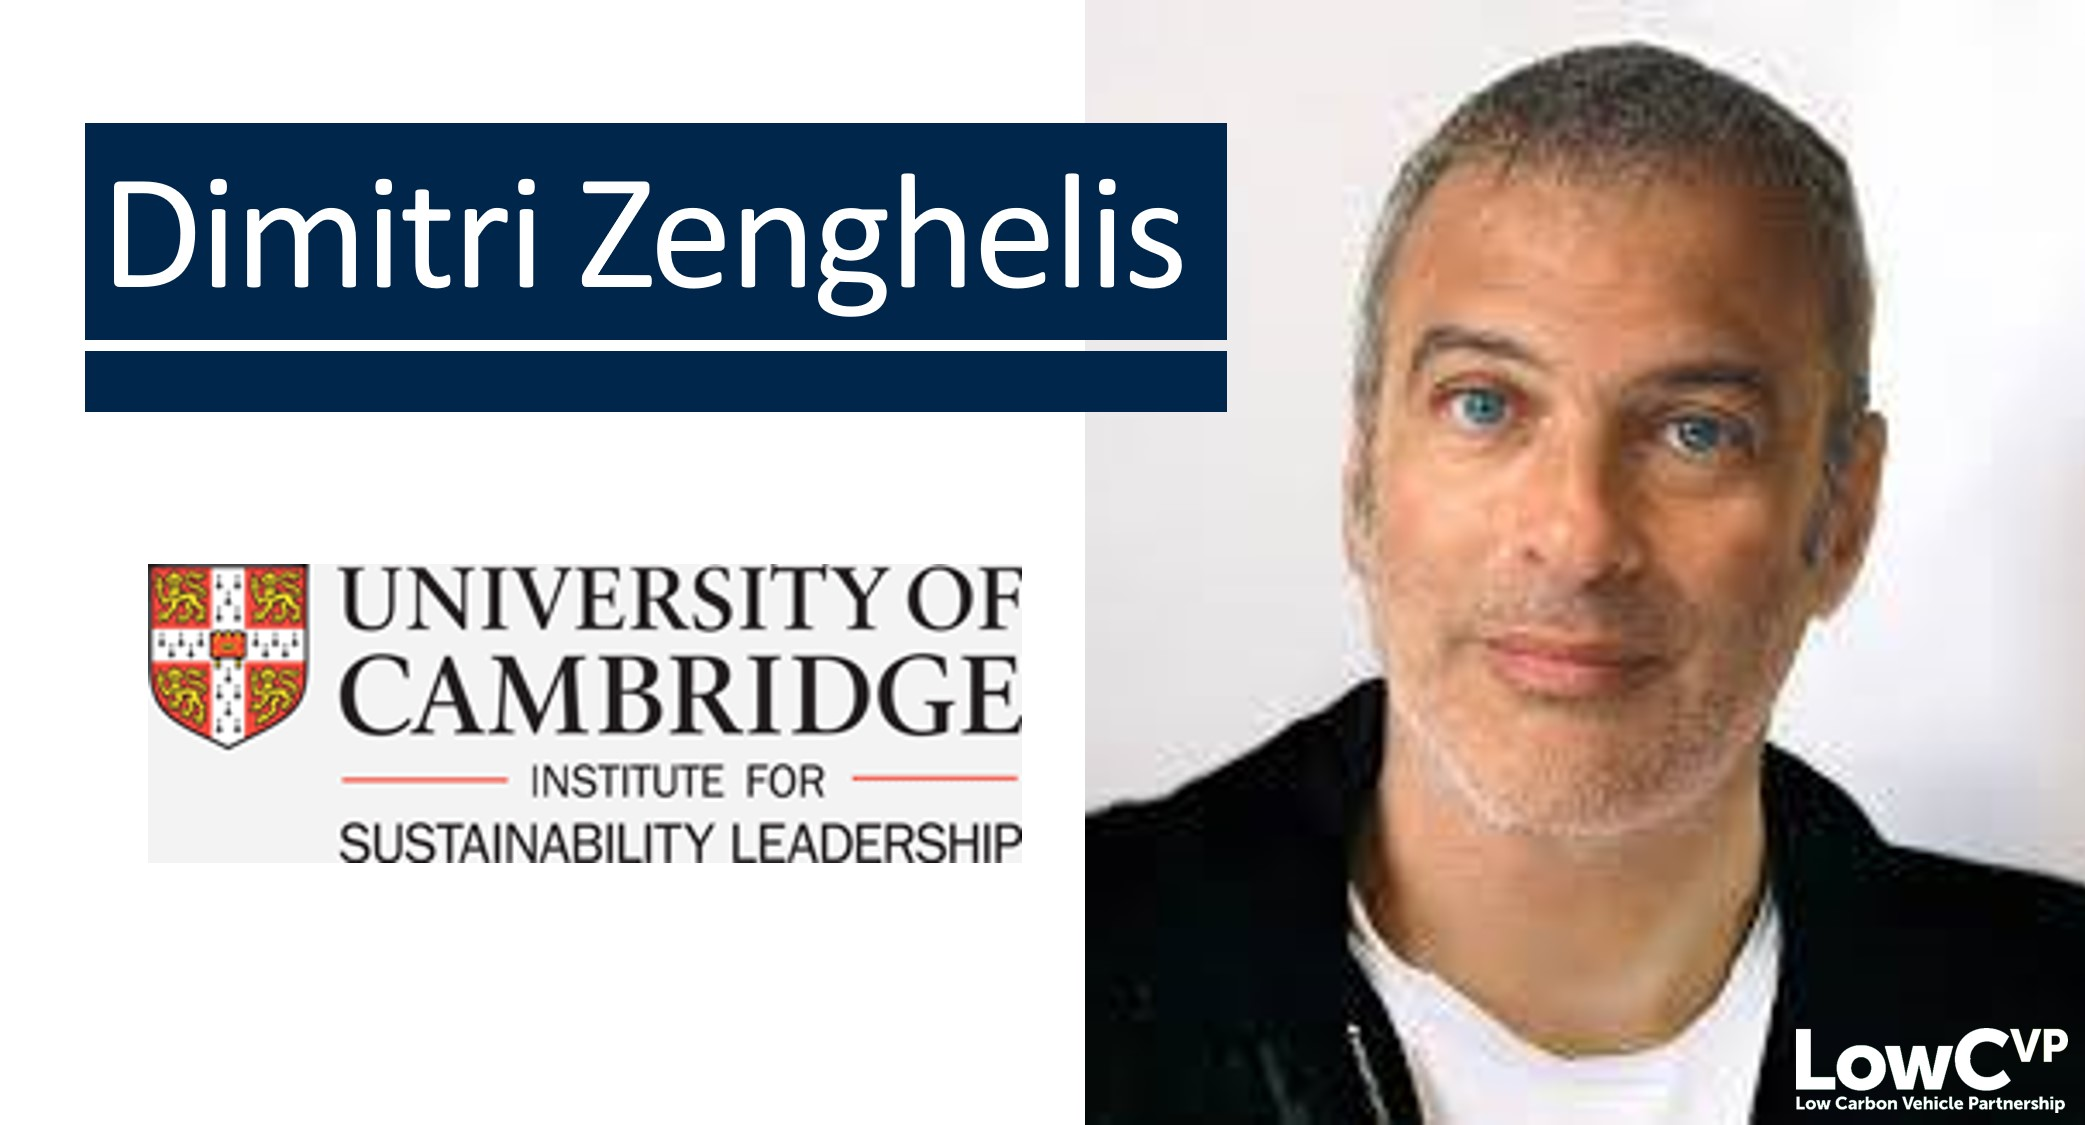 Dimitri Zenghelis, Institute for Sustainability Leadership